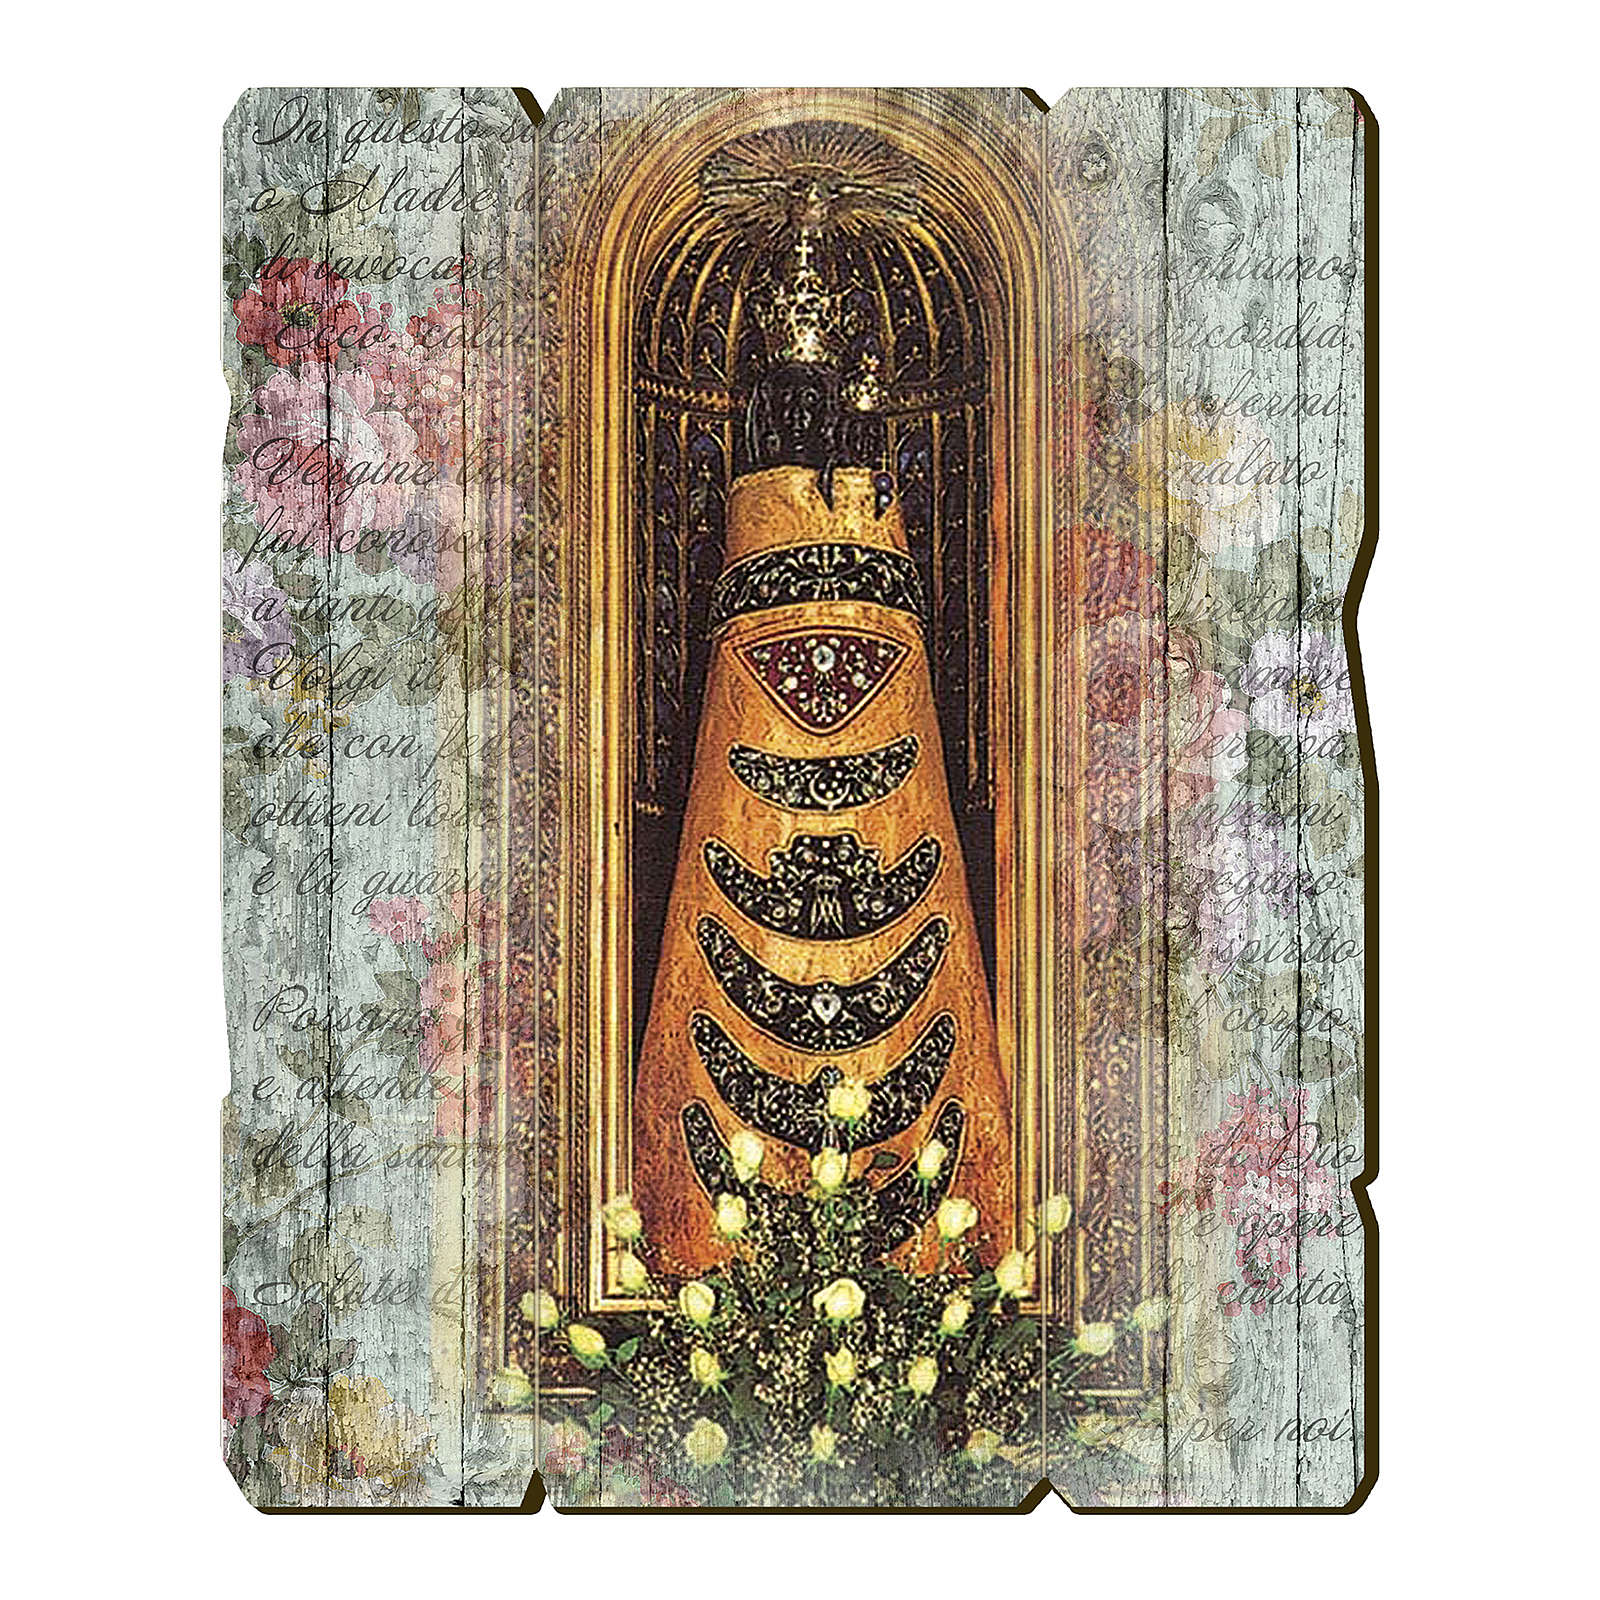 Our Lady of Loreto painting in moulded wood 3